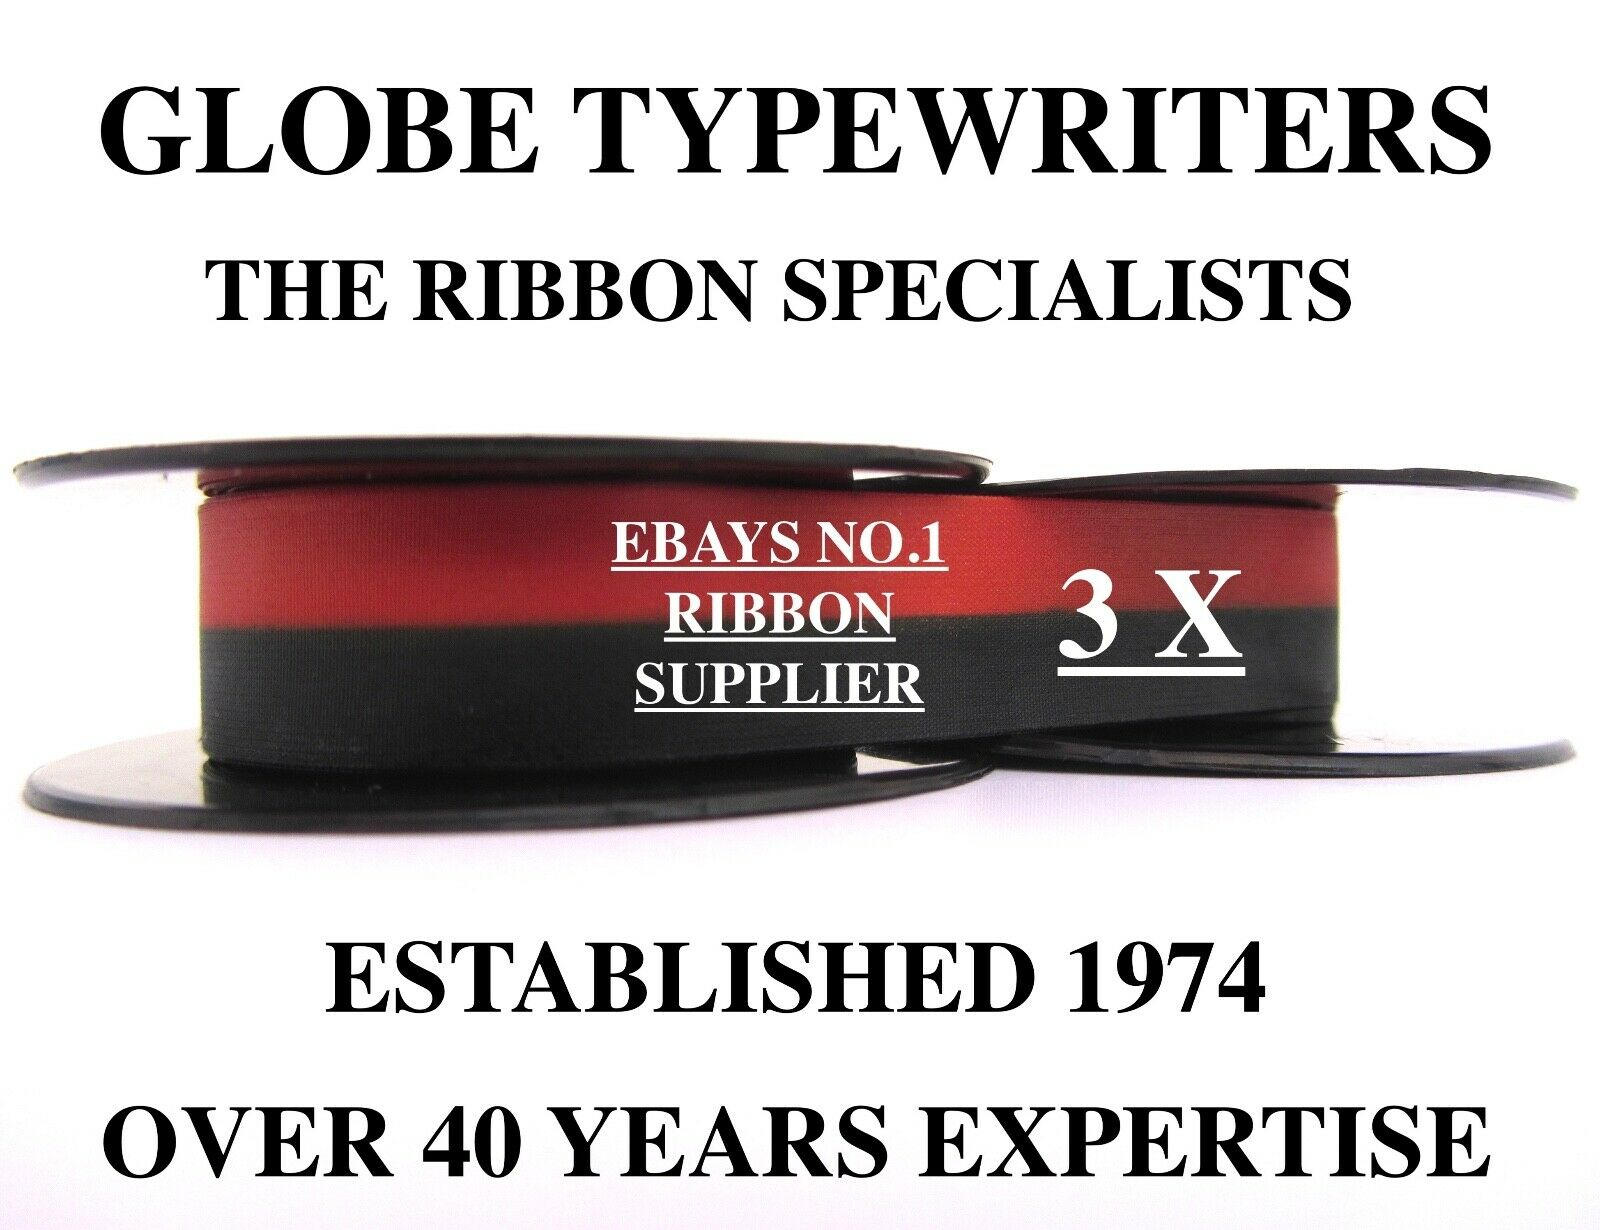 3 x OLYMPIA SPLENDID 66 or 99 *BLACK/RED* TOP QUALITY  TYPEWRITER RIBBONS